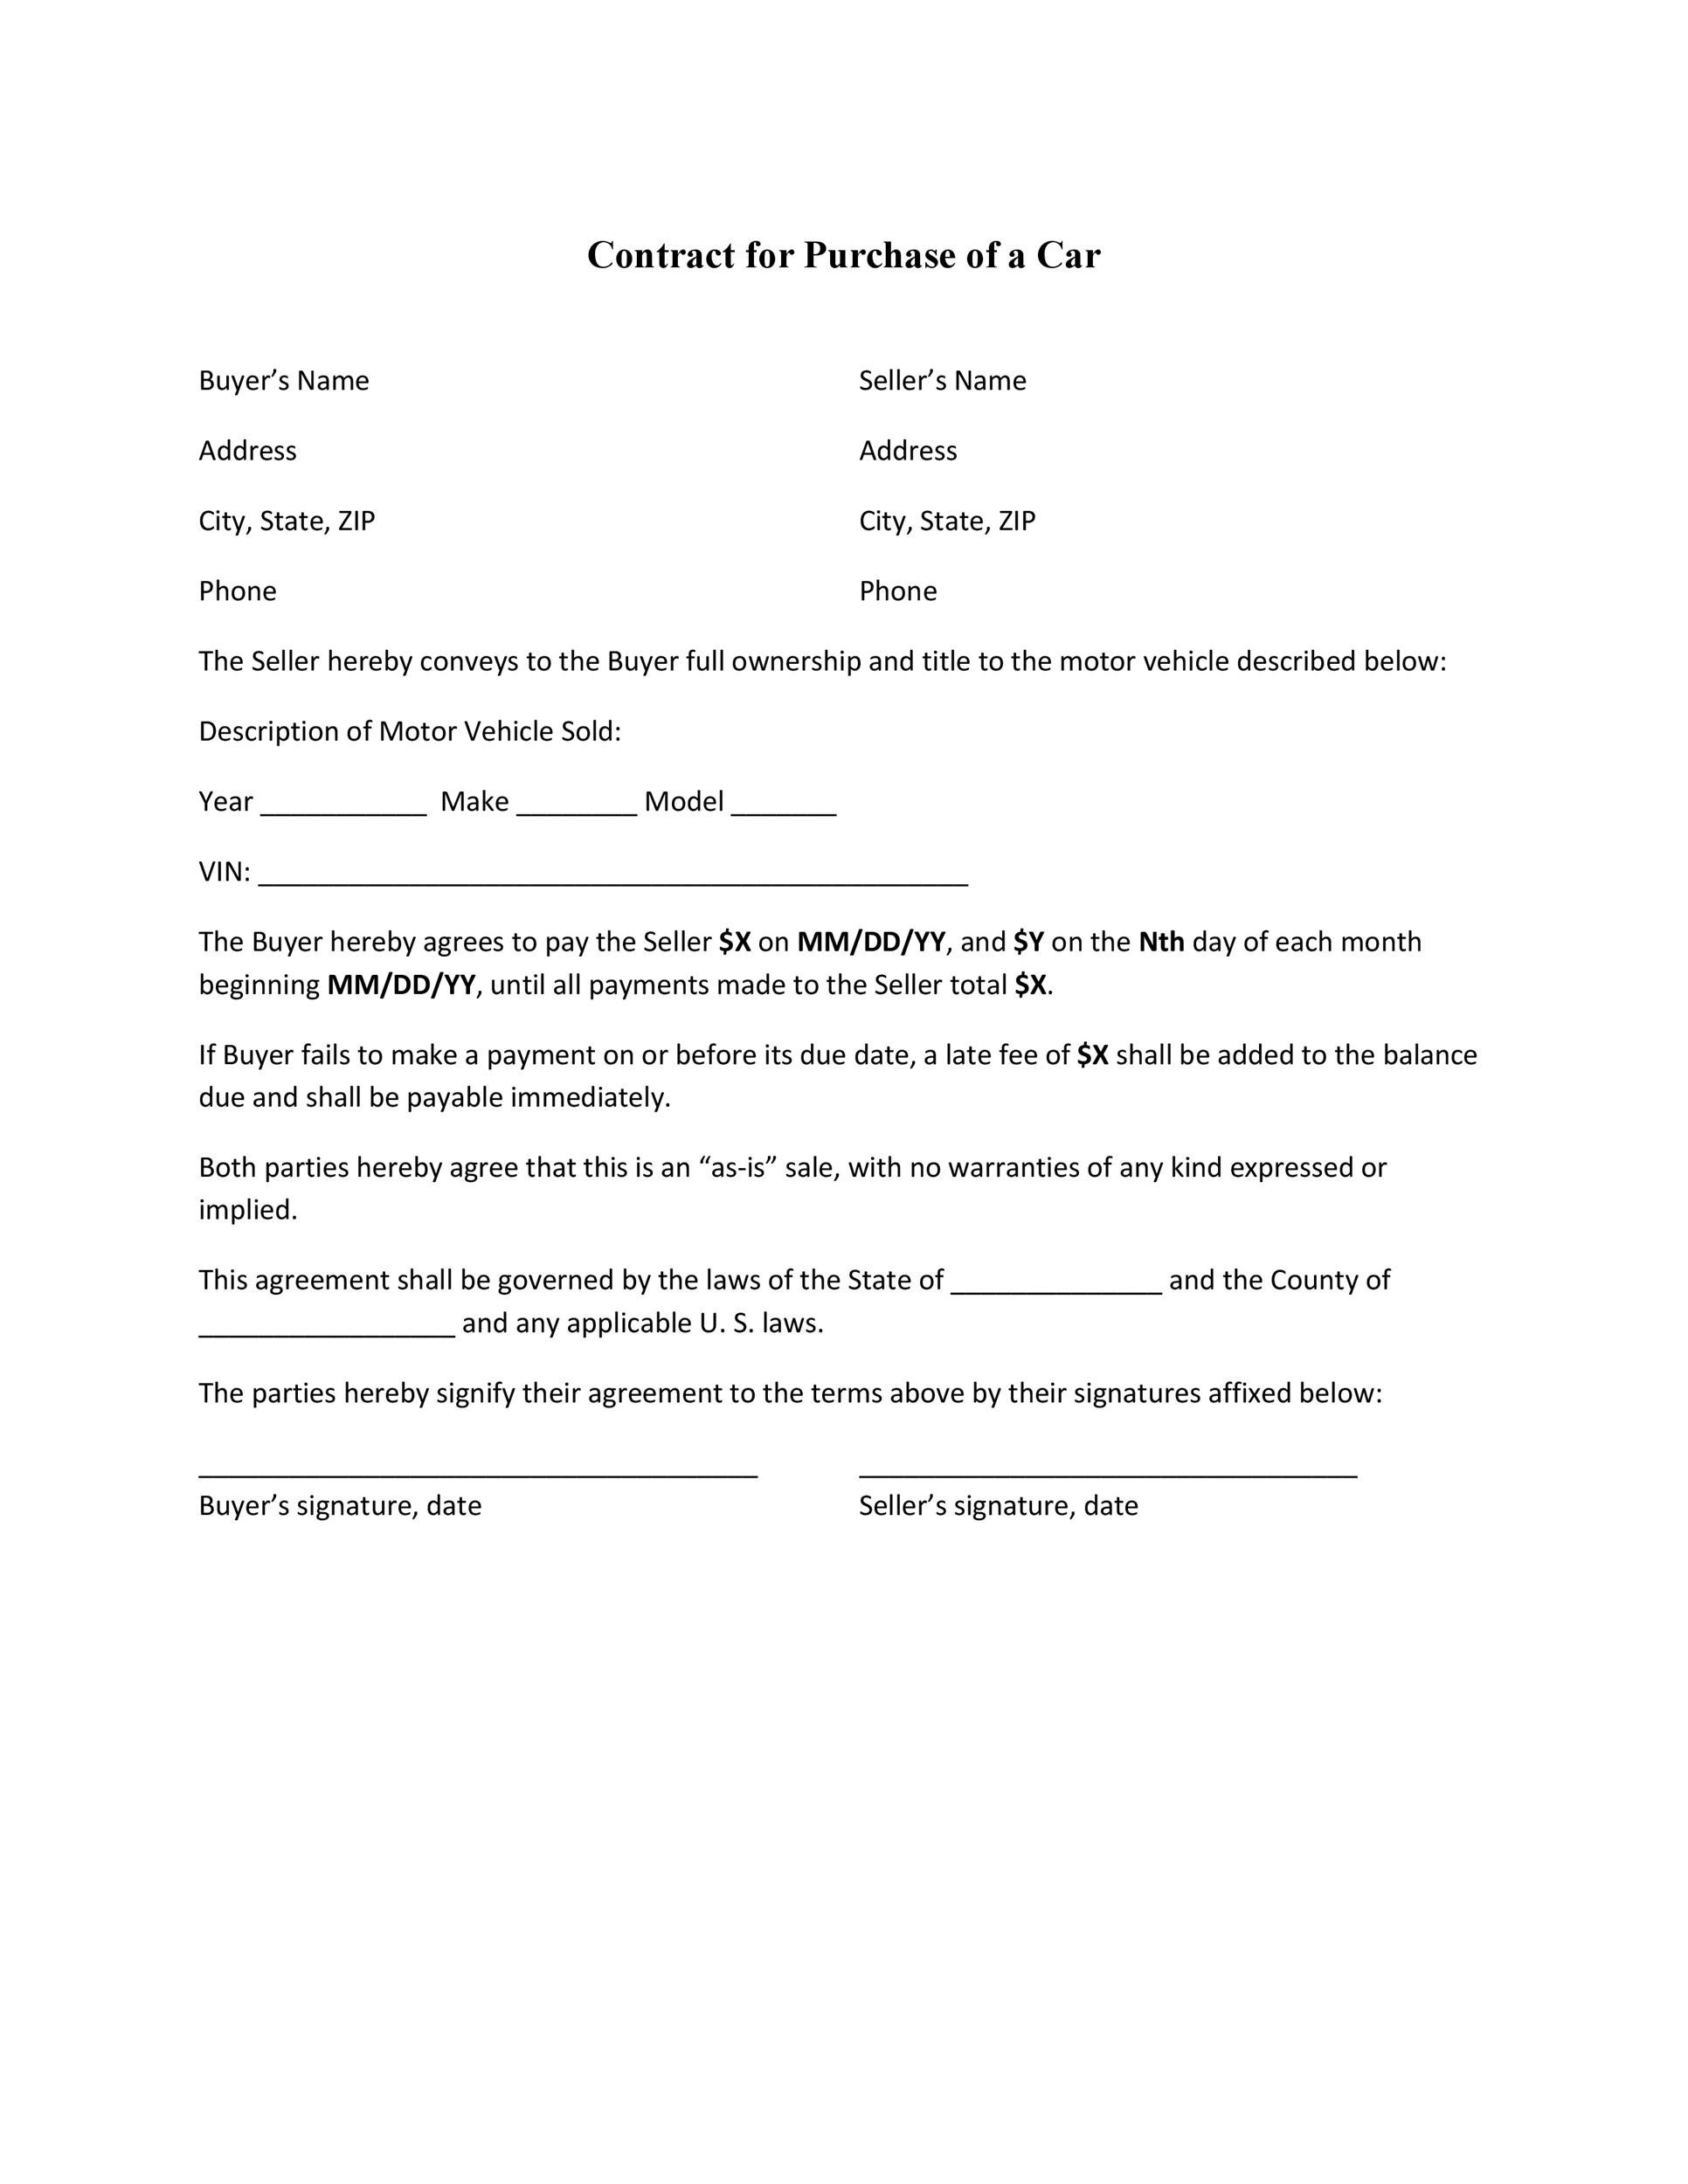 42 Printable Vehicle Purchase Agreement Templates Template Lab – Car Purchase Agreement with Payments